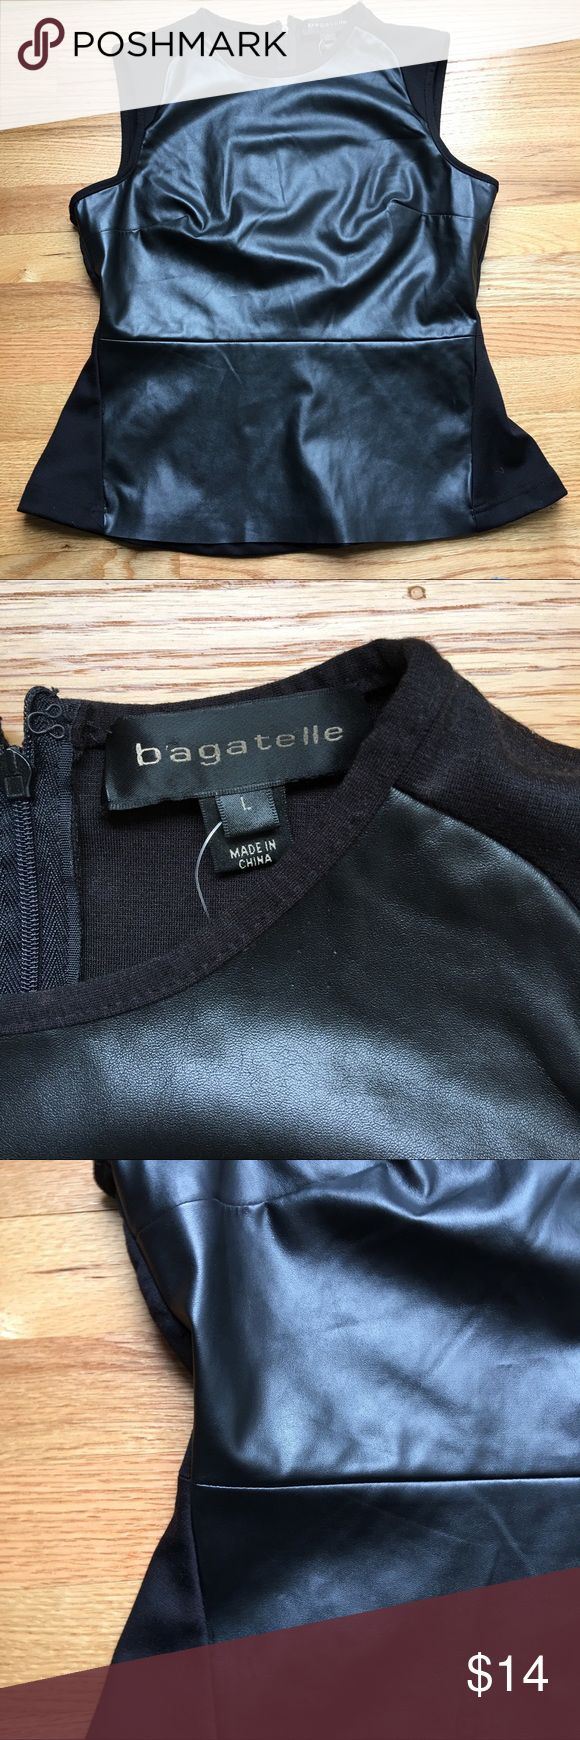 "Vegan Leather Peplum Top Black Sleeveless Large New with tags! Please see Small pinholes near the neckline, not very noticeable. Size Large 21"" across at bust, 24"" long bagatelle Tops"